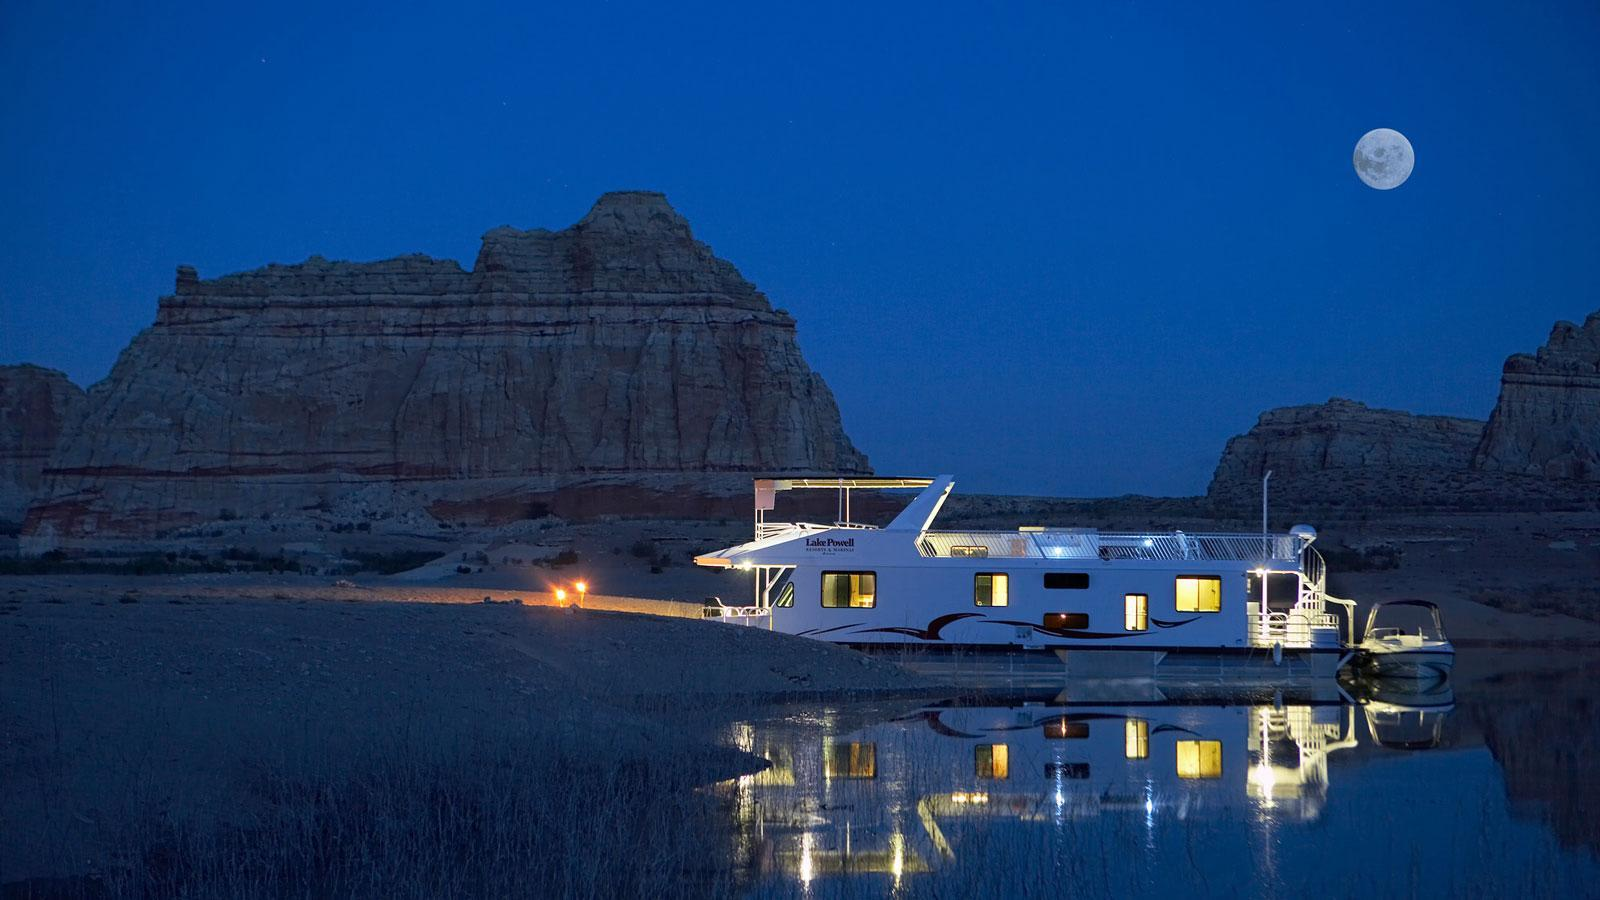 Settling in for the night on Lake Powell